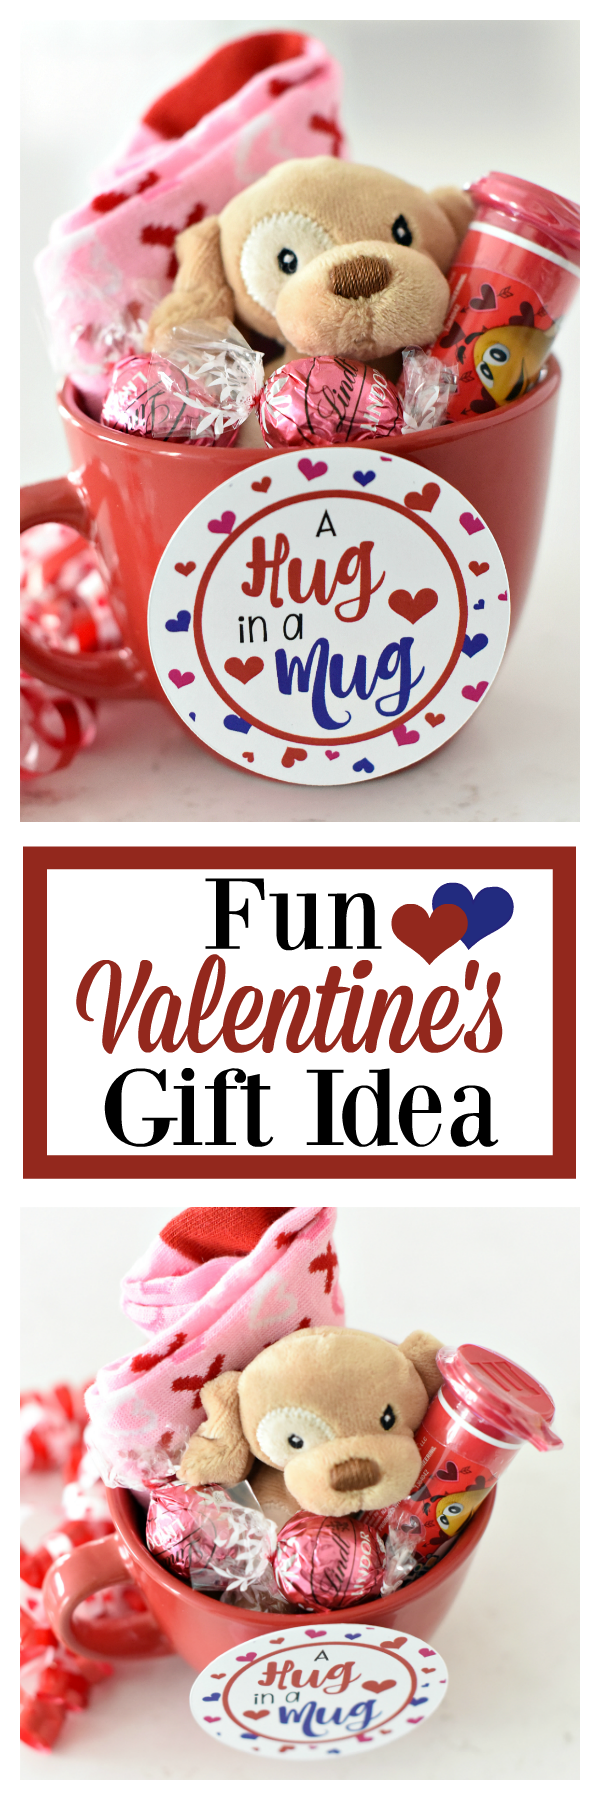 Fun Valentine's Day Gift Idea for kids-Print this Hug in a Mug tag and fill a mug with cute little Valentine's gifts for your kids. #valentinesday #valentinesdaygifts